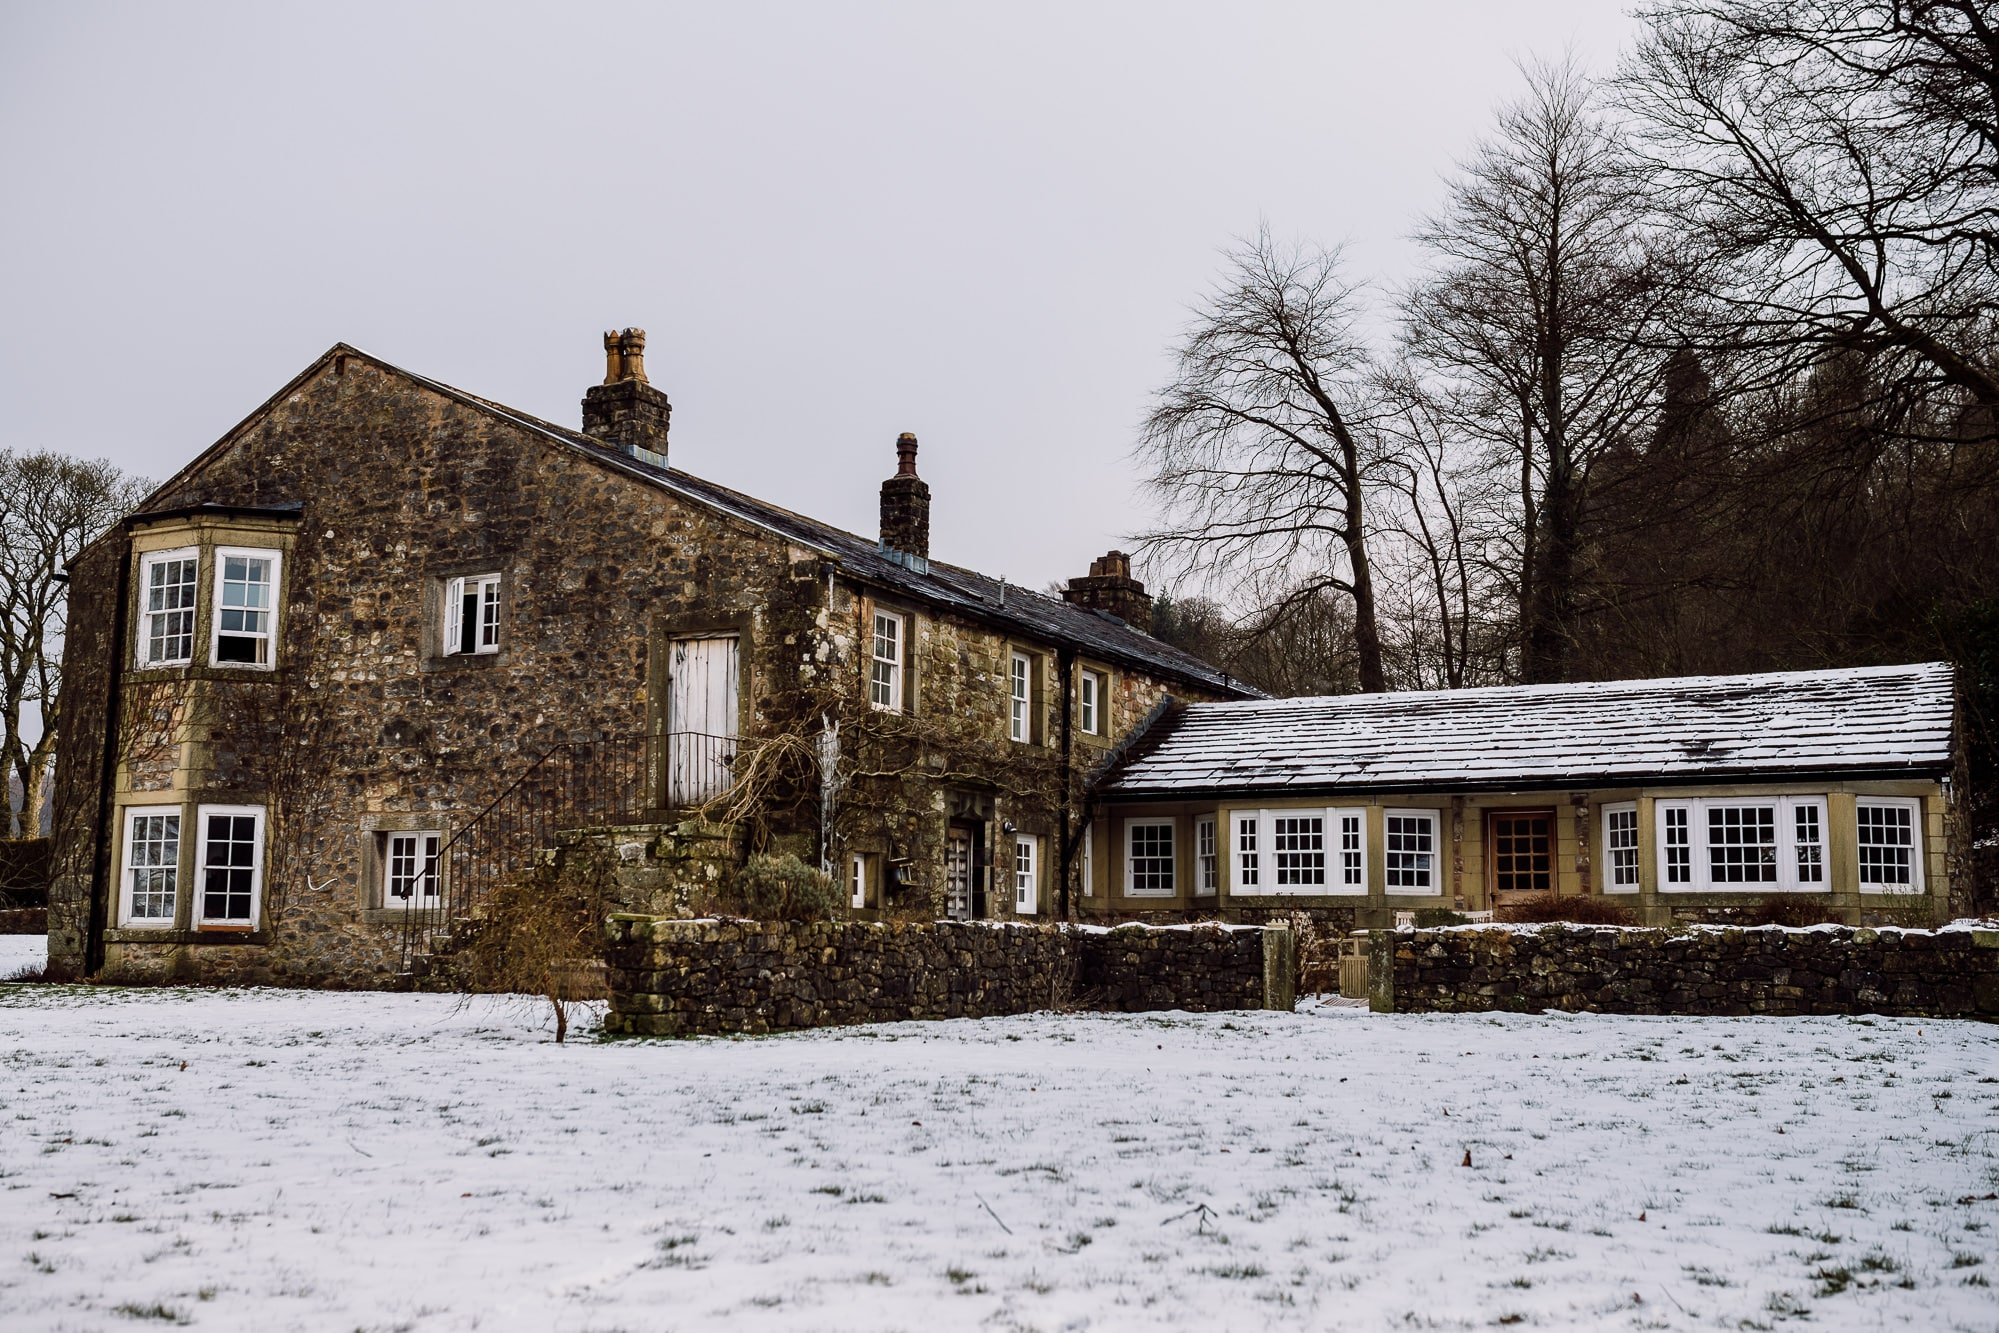 A picture of the piggeries at the Inn at Whitewell, Lancashire